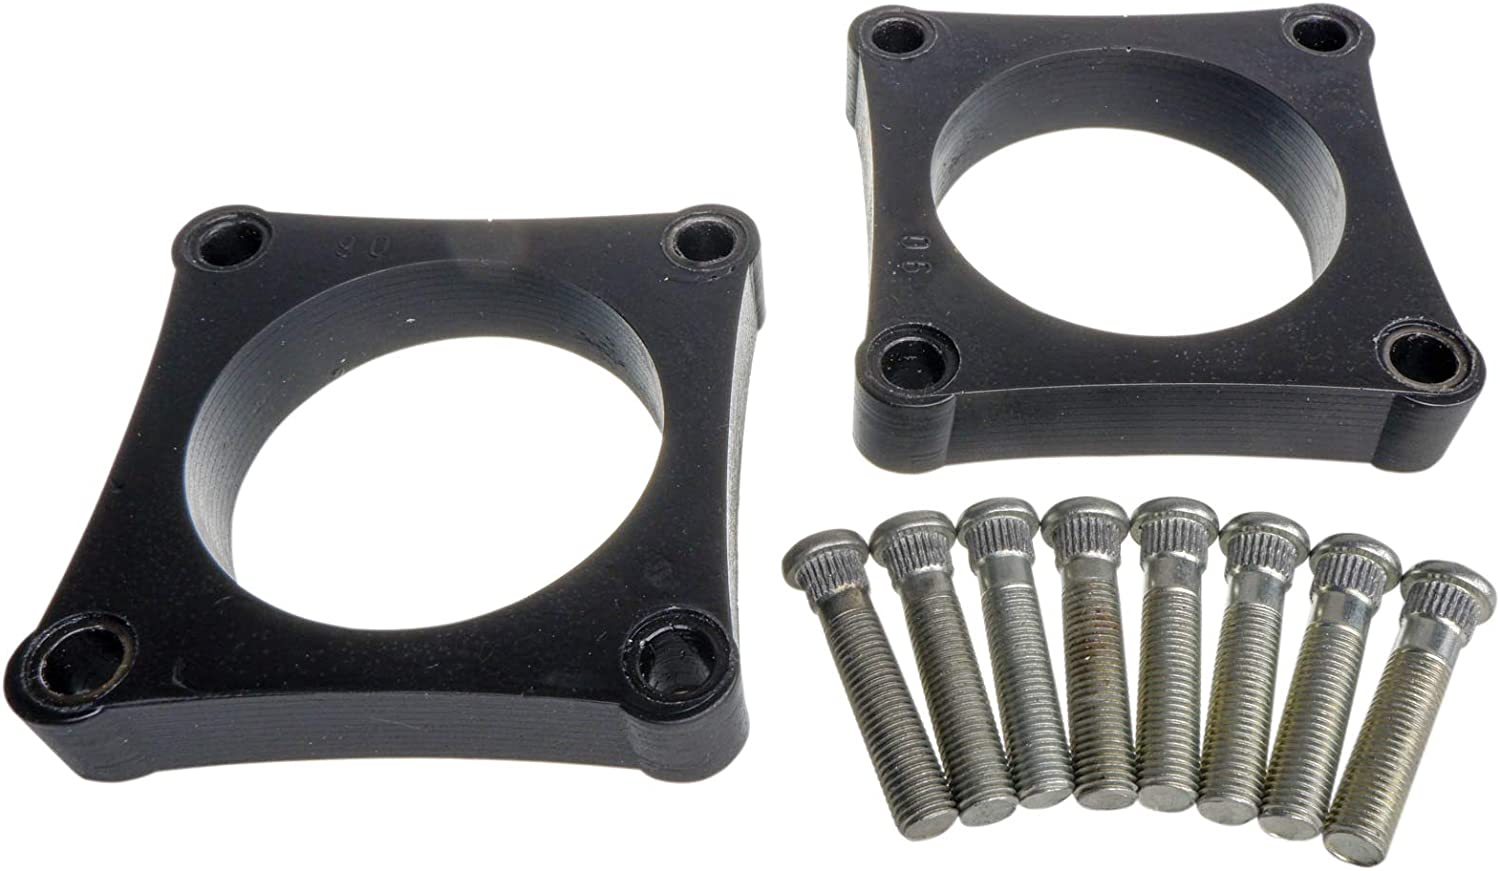 Rear coil spacers 20mm for Ford ESCAPE 2007-2012 MERCURY 2007-2015 MAVERICK 2000-2006 Lift Kit